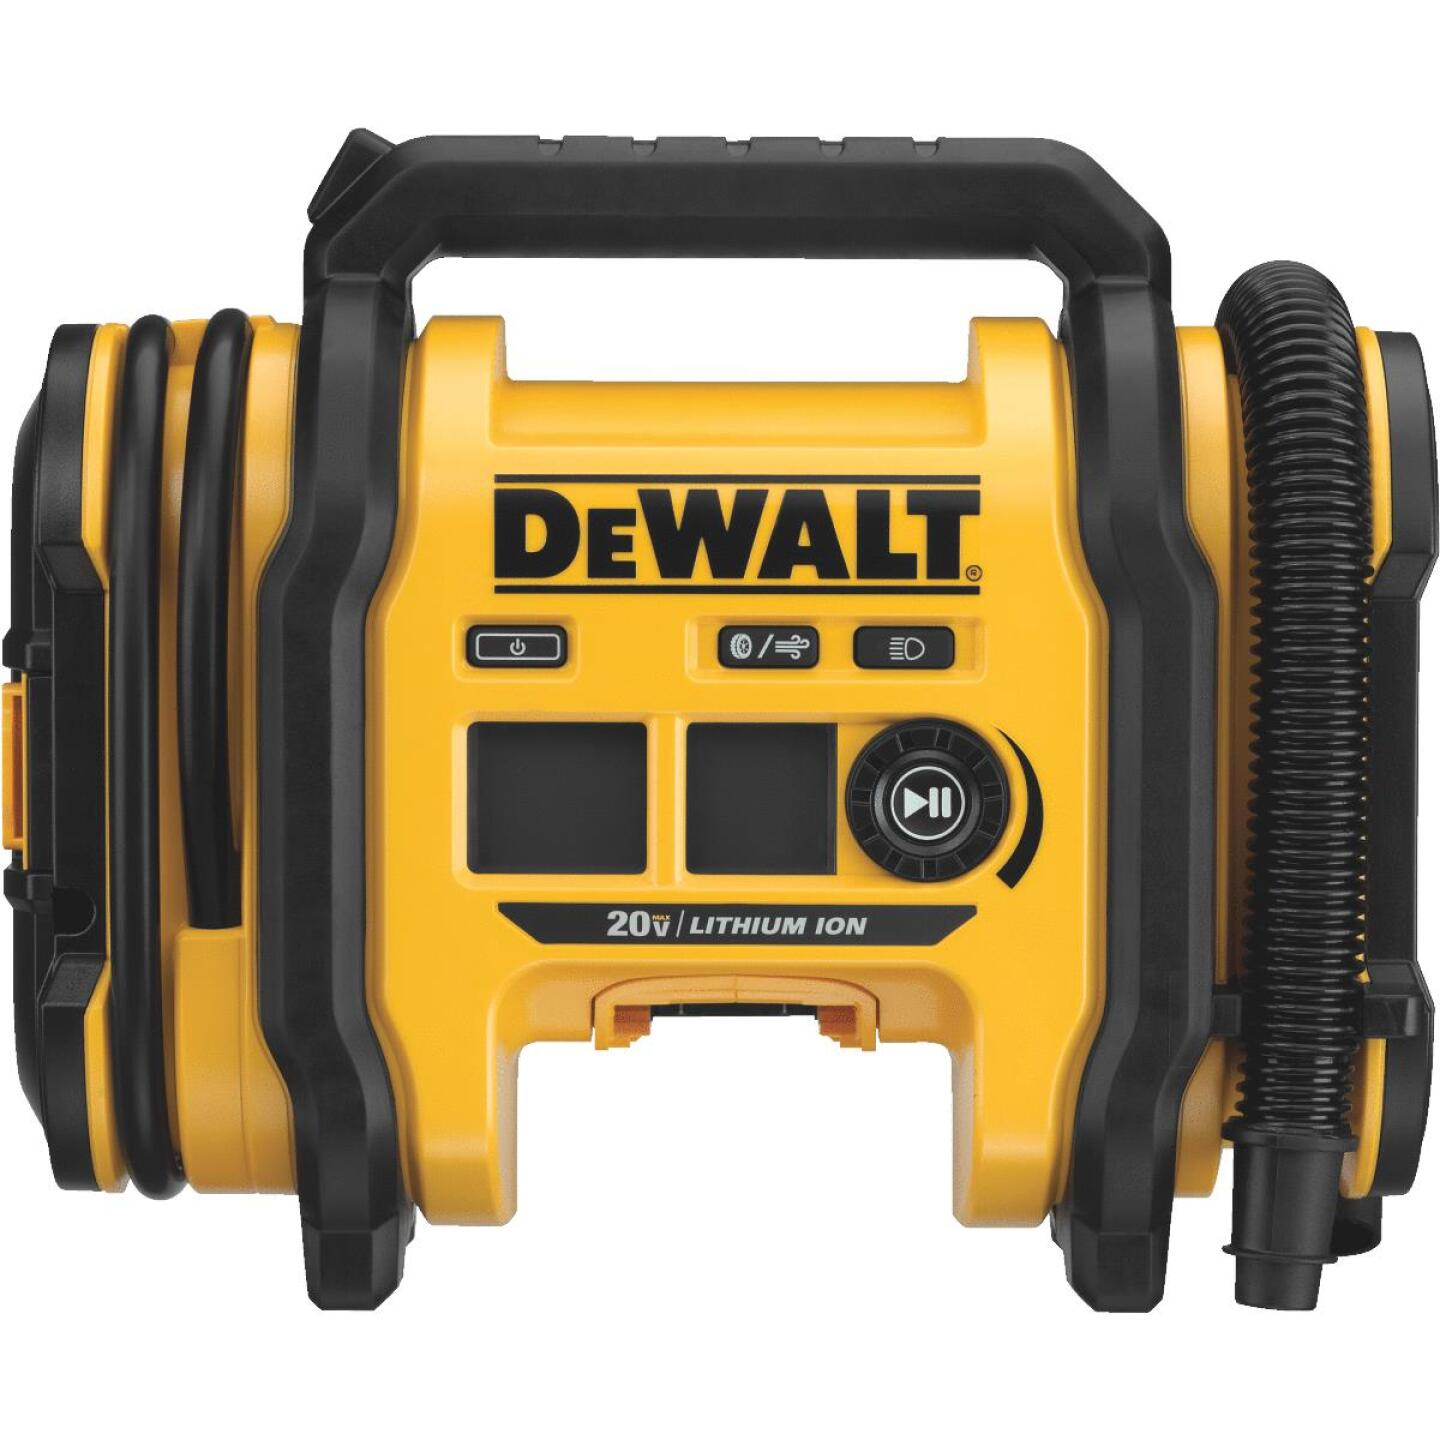 DeWalt 20 Volt MAX Lithium-Ion 160 psi Corded/Cordless Inflator (Bare Tool) Image 1